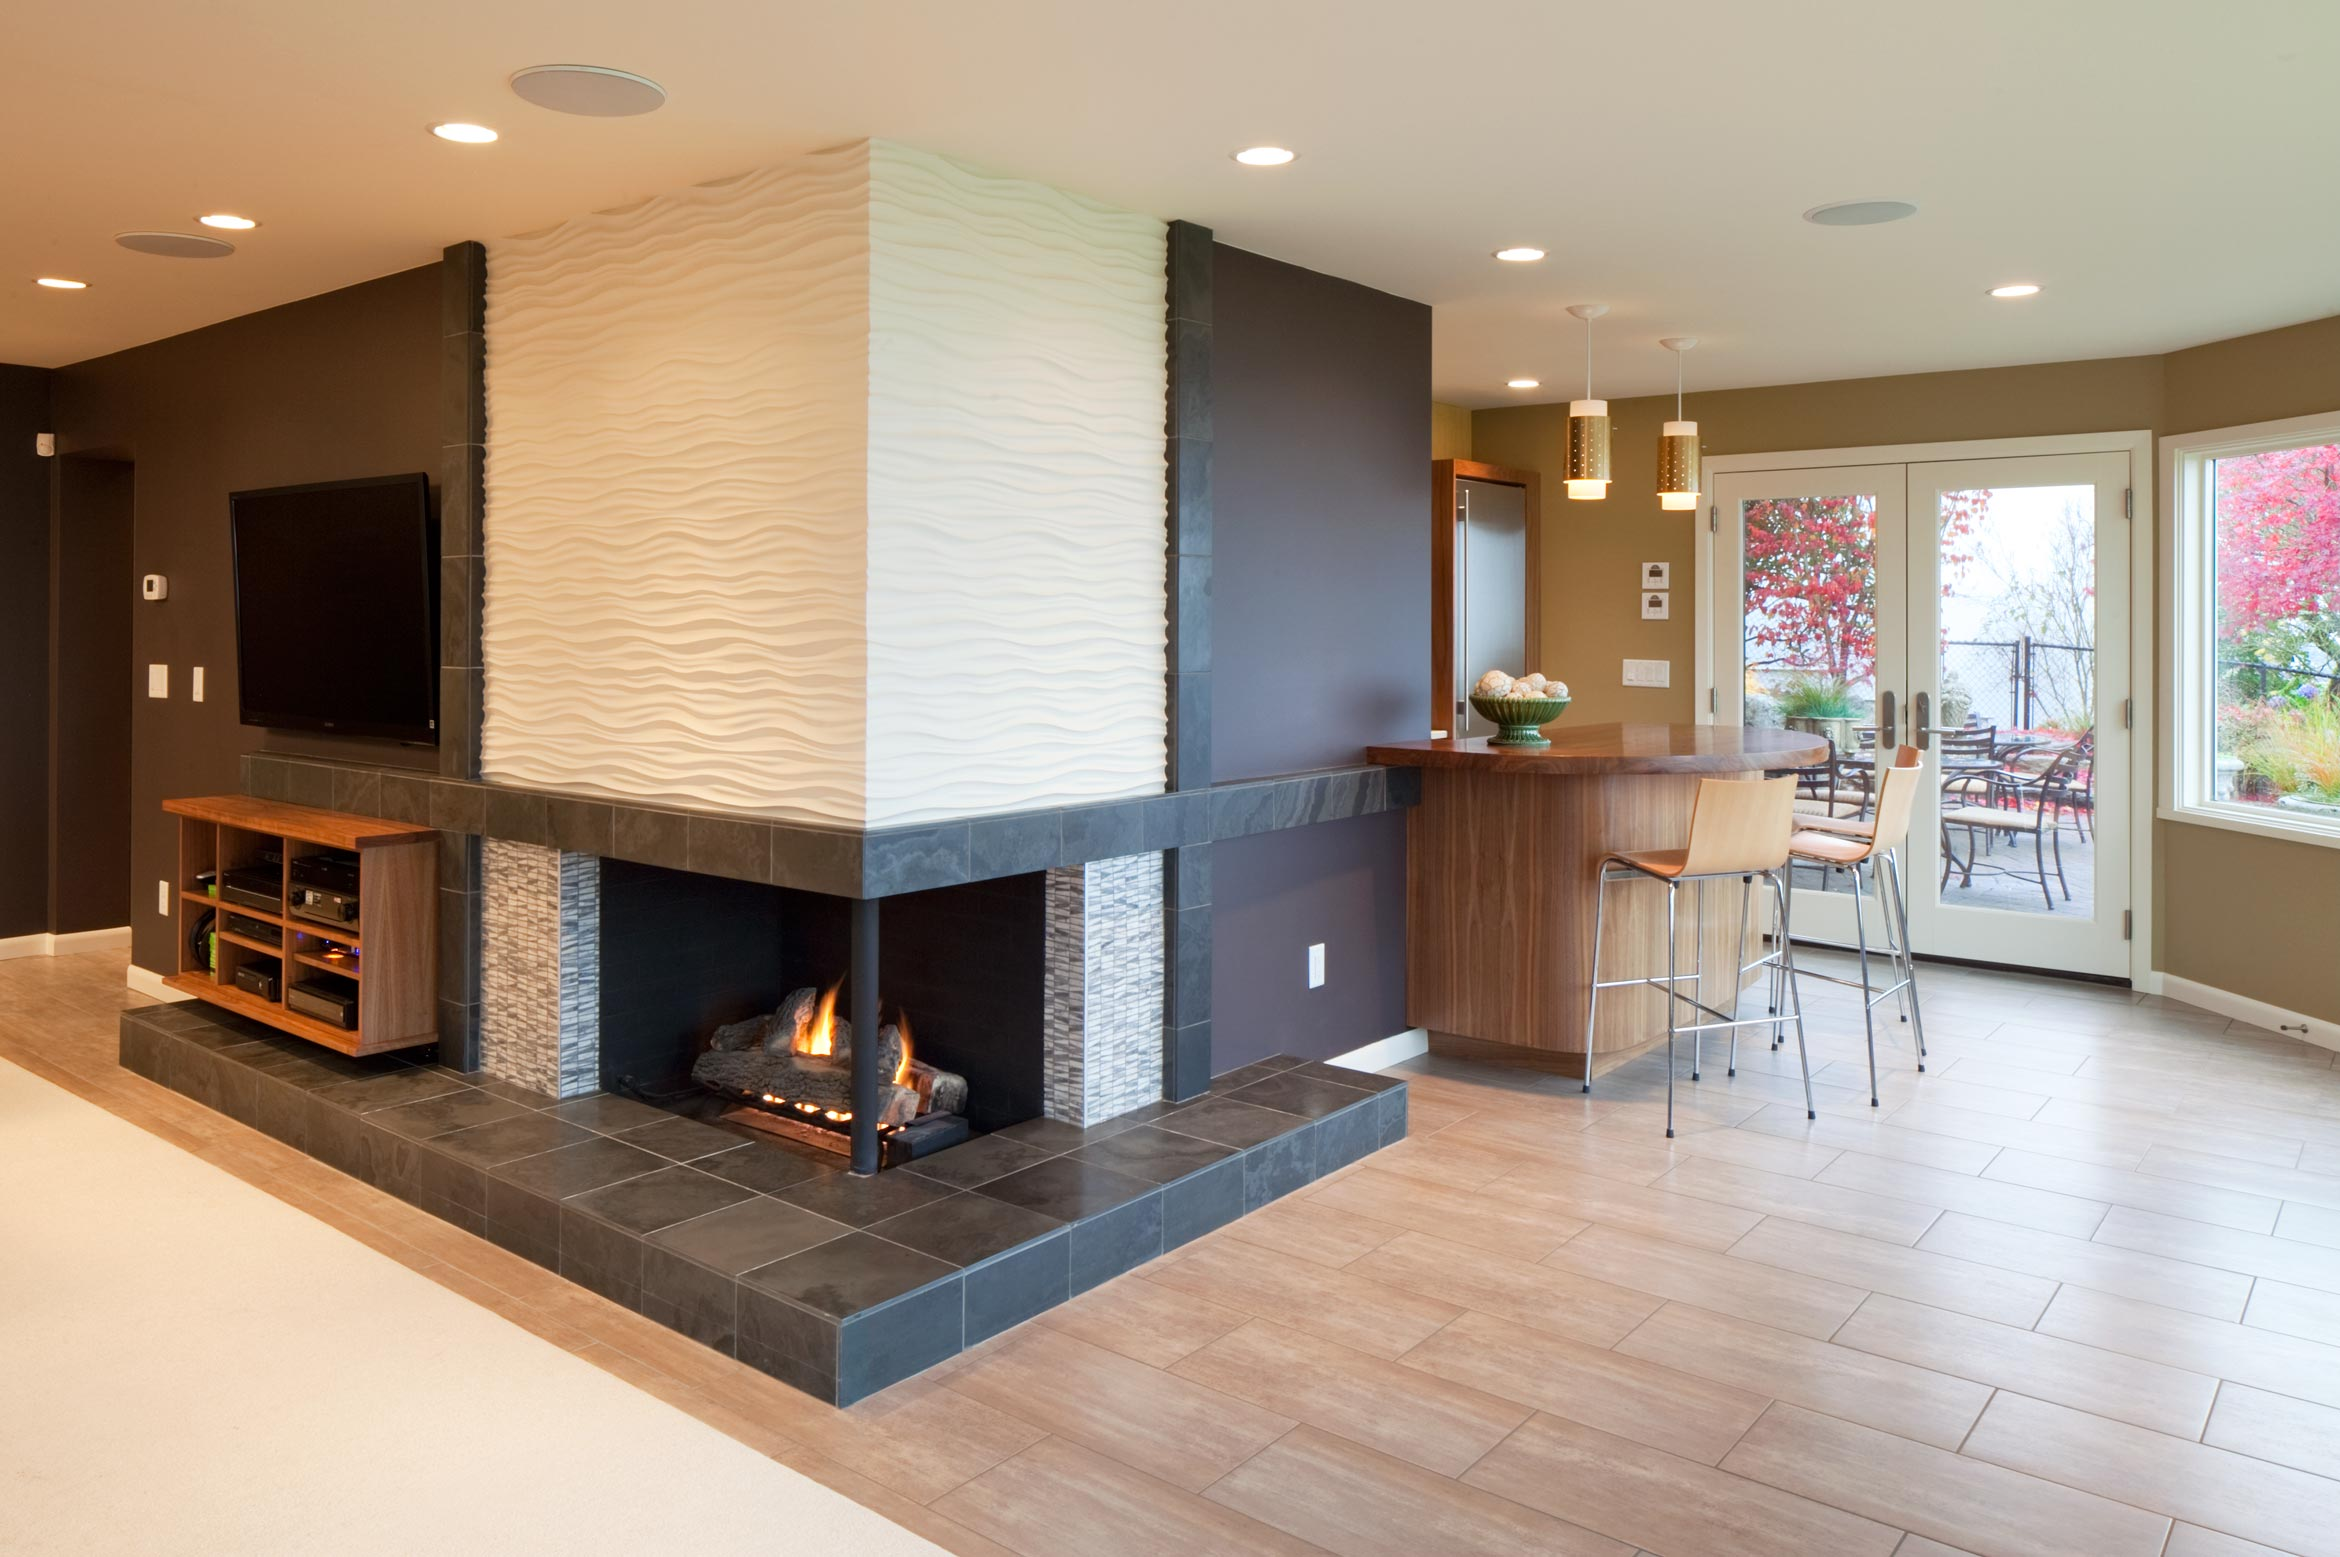 Portland Architect Celeste Lewis Shares Details About The Recently Remodeled Viewmaster House